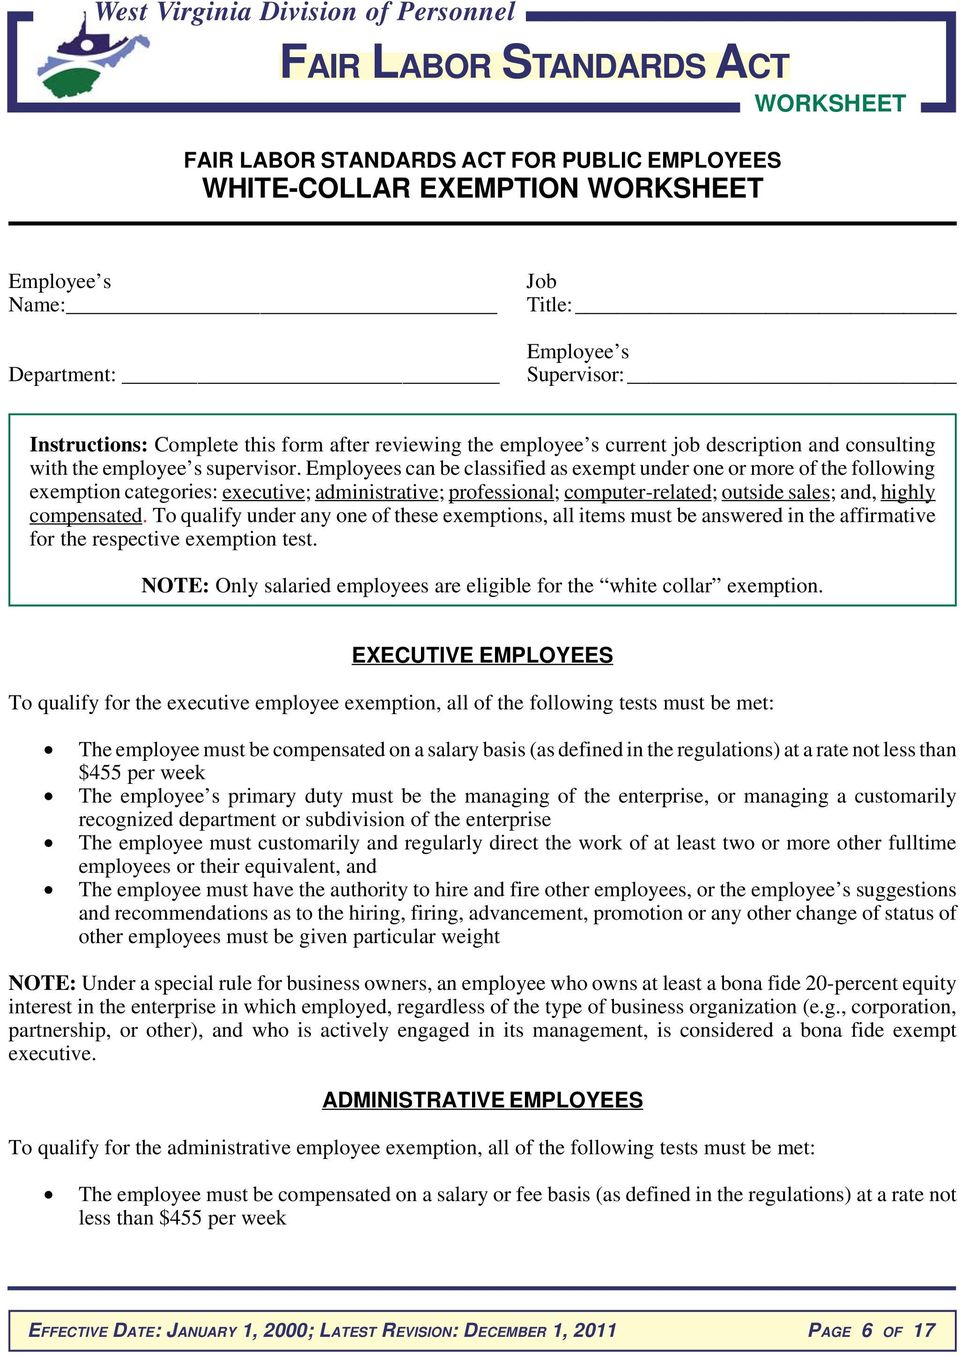 Employees can be classified as exempt under one or more of the following exemption categories: executive; administrative; professional; computer-related; outside sales; and, highly compensated.